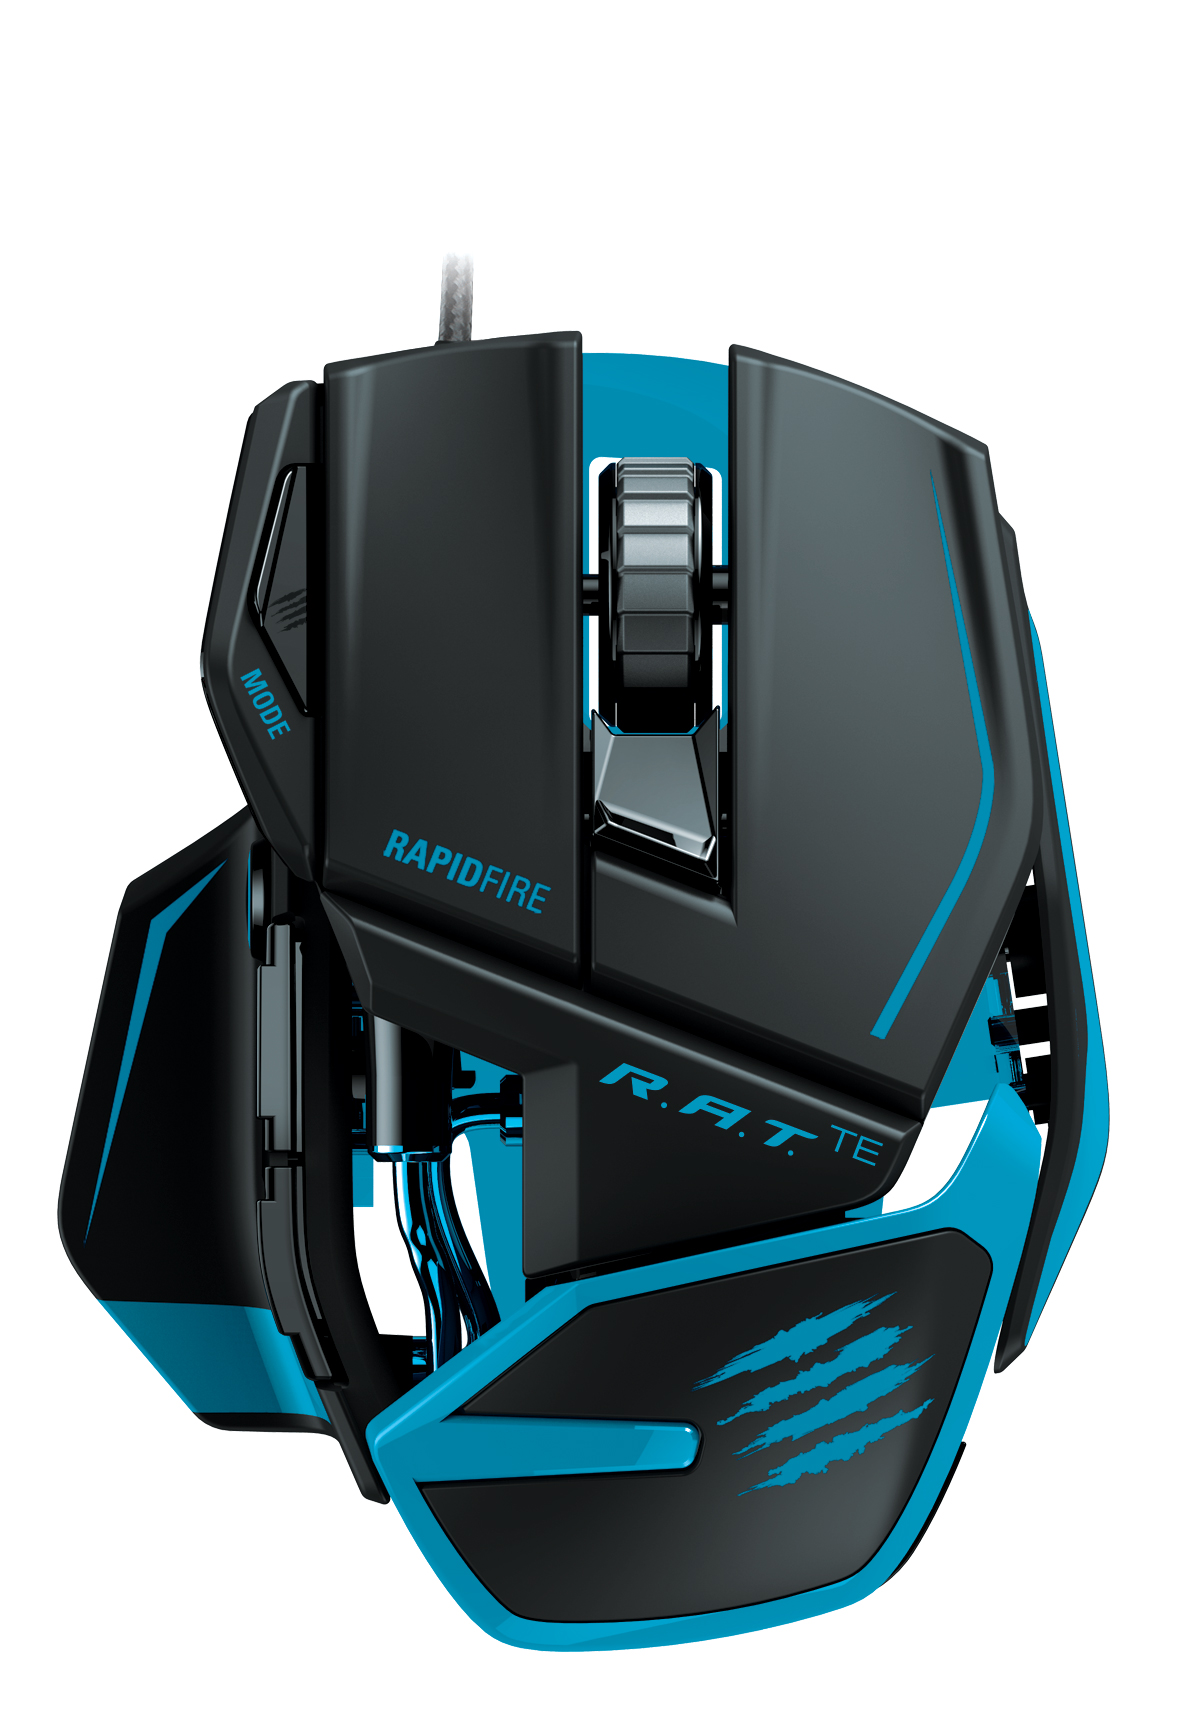 Mad-Catz-R.A.T.TE-Gaming-Mouse-03